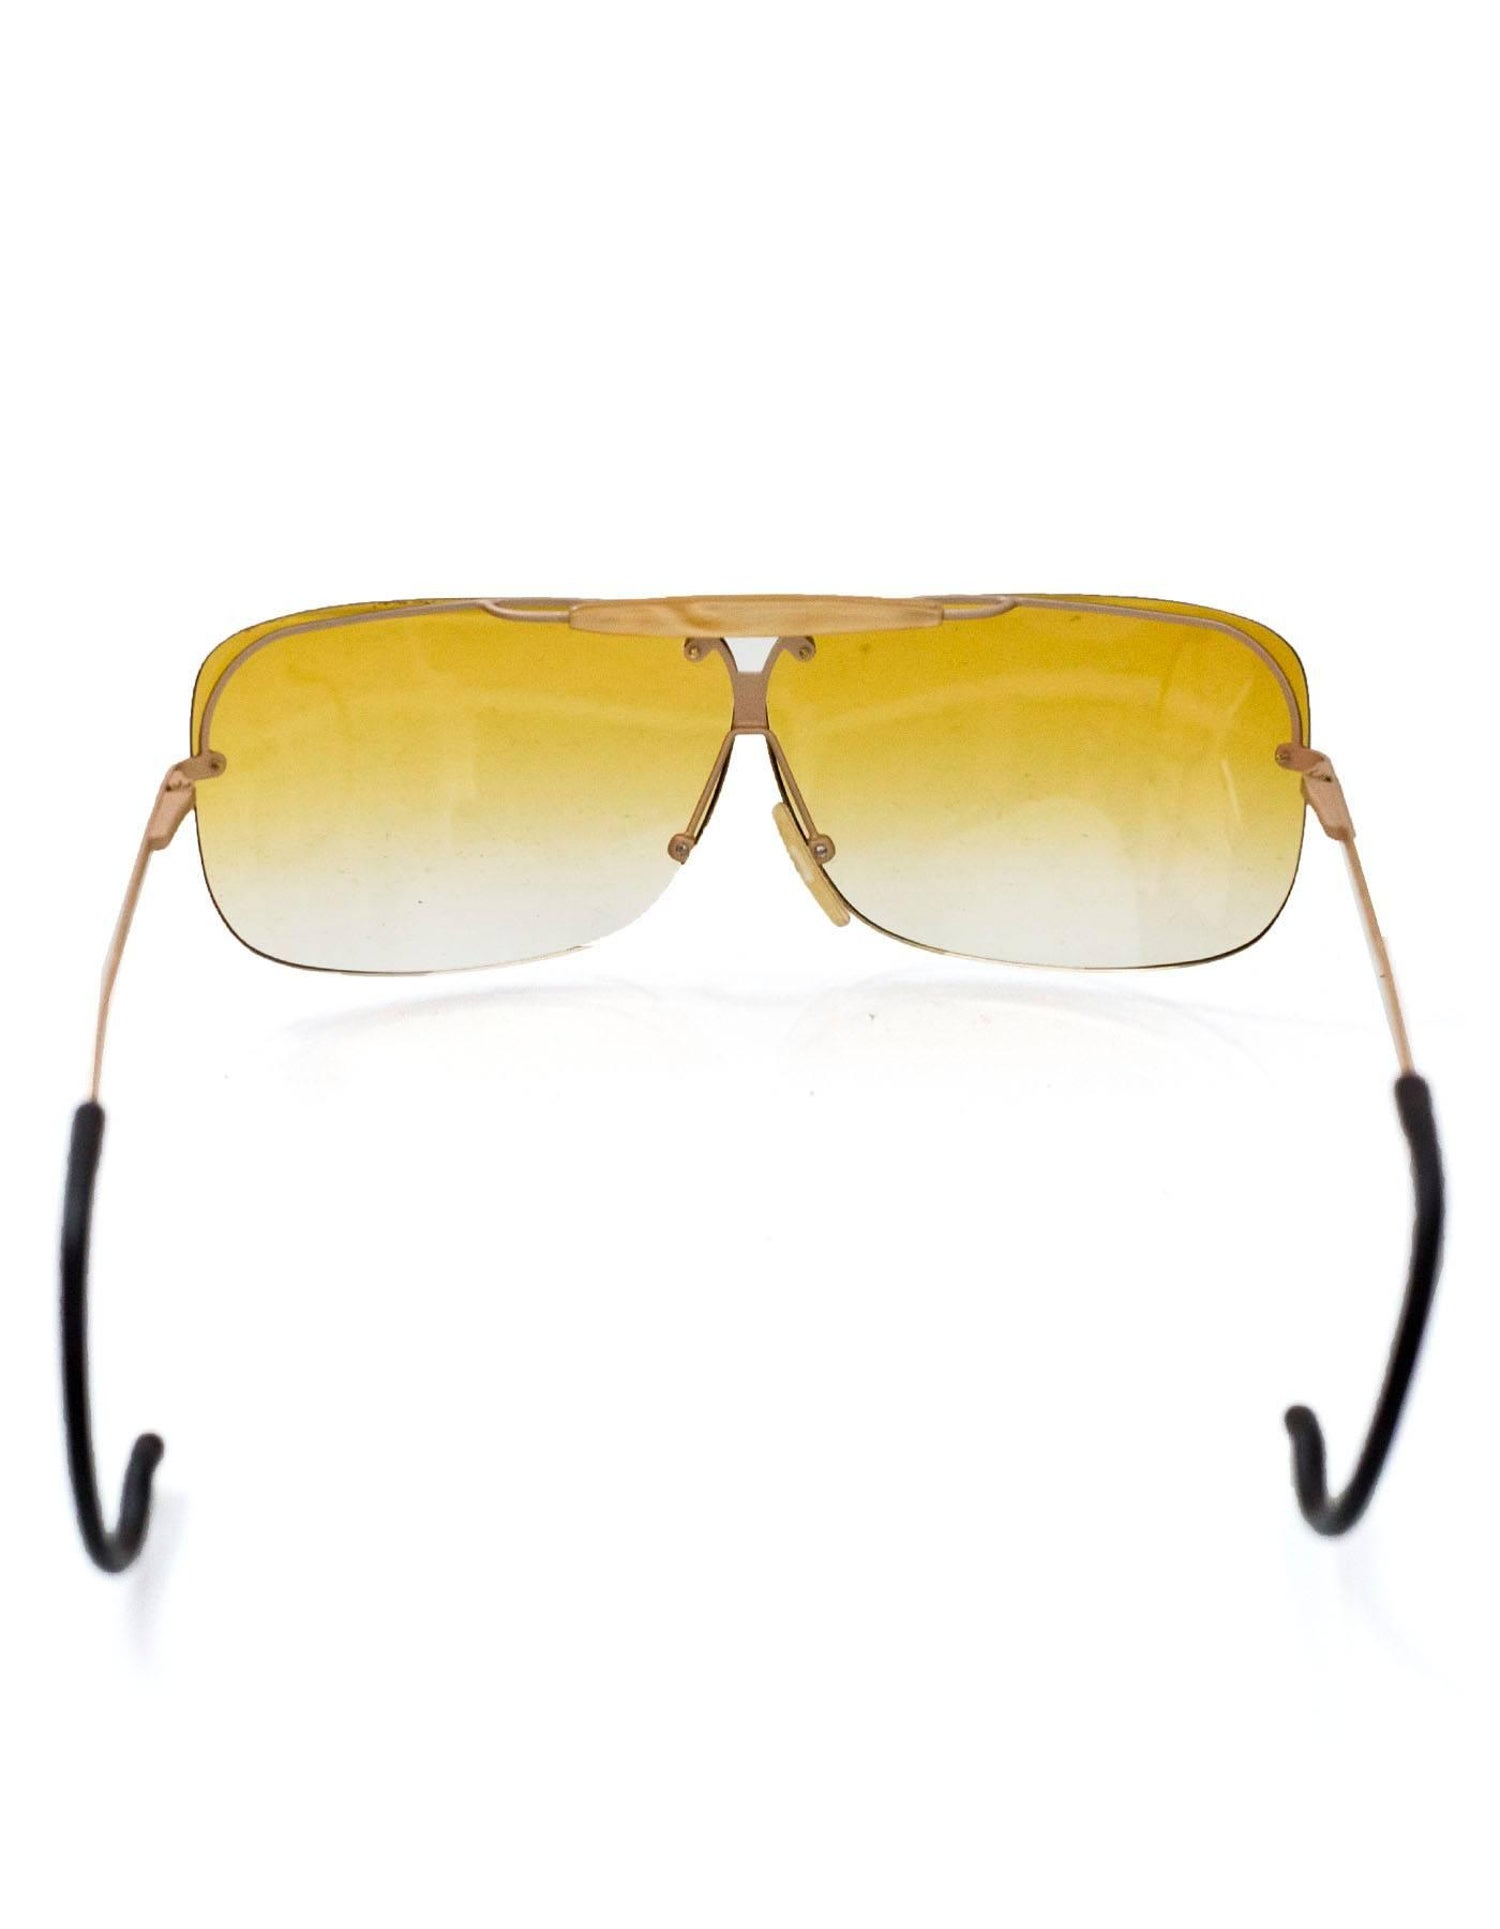 3a508a2fe449 Bottega Veneta Vintage Yellow Ombre Sunglasses with Case For Sale at 1stdibs